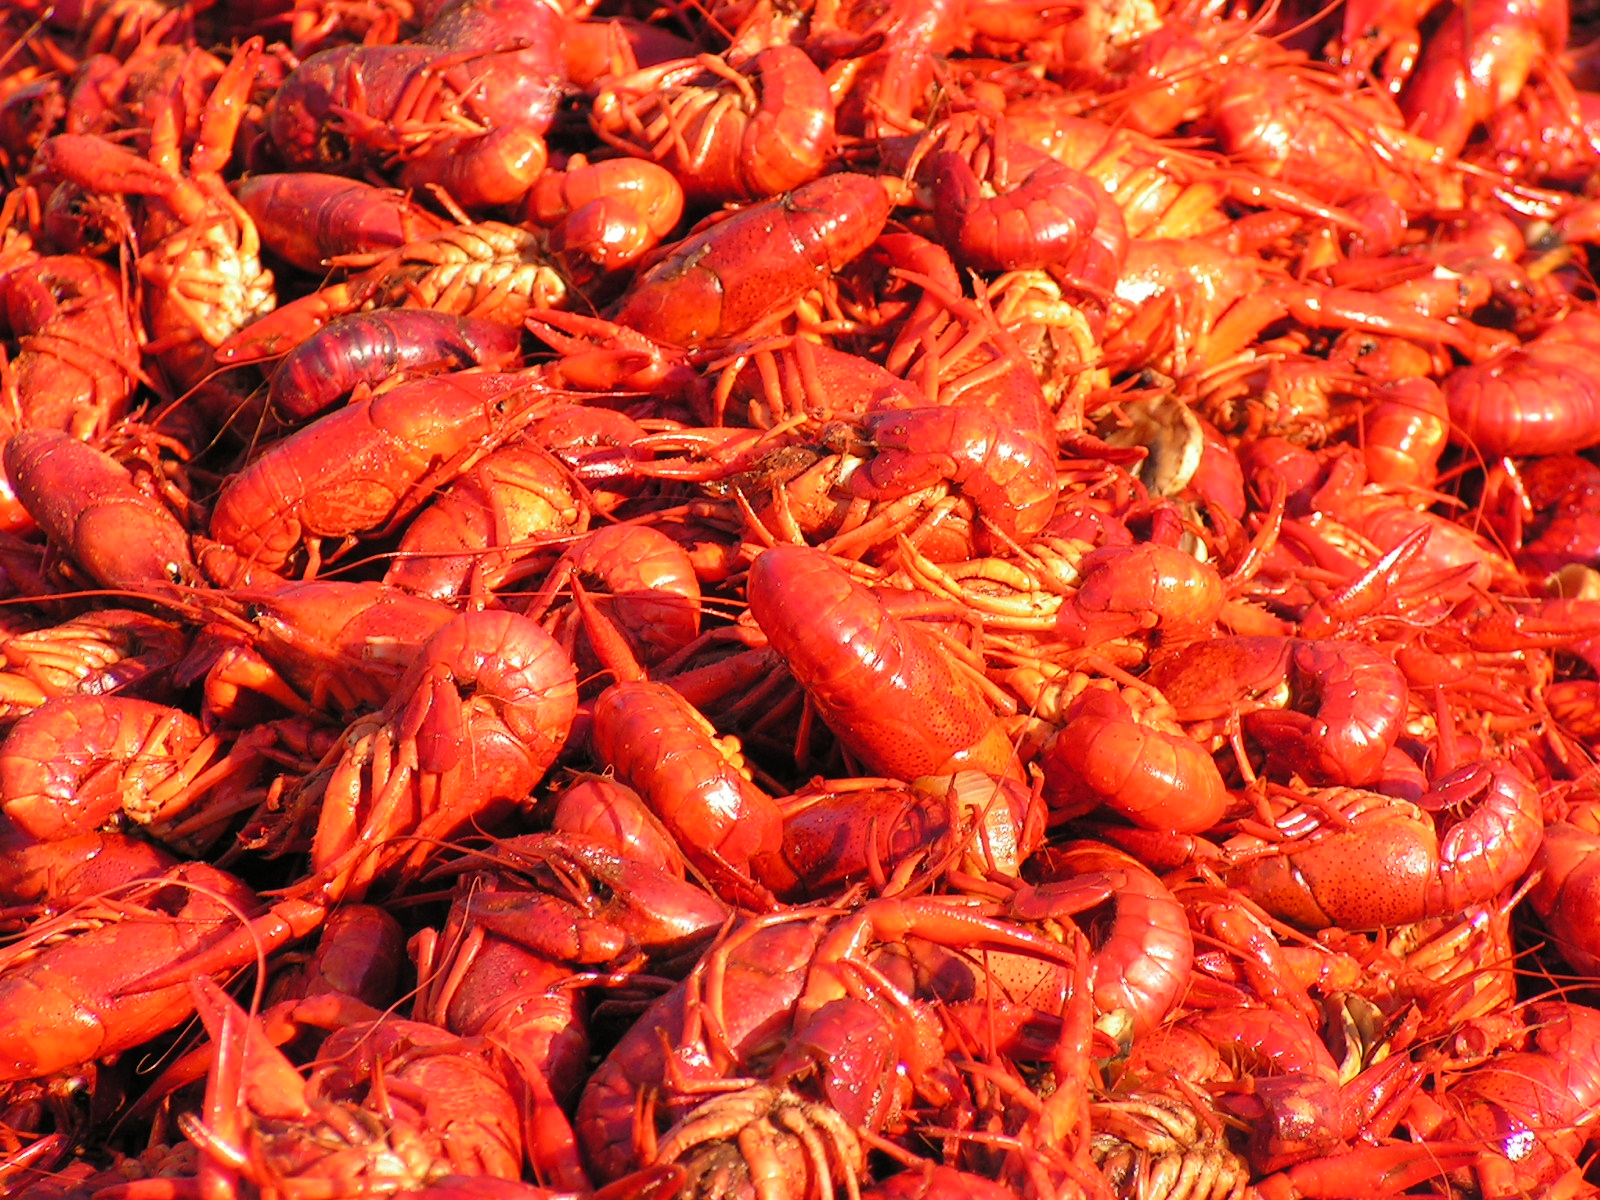 Cooked Crawfish Picture